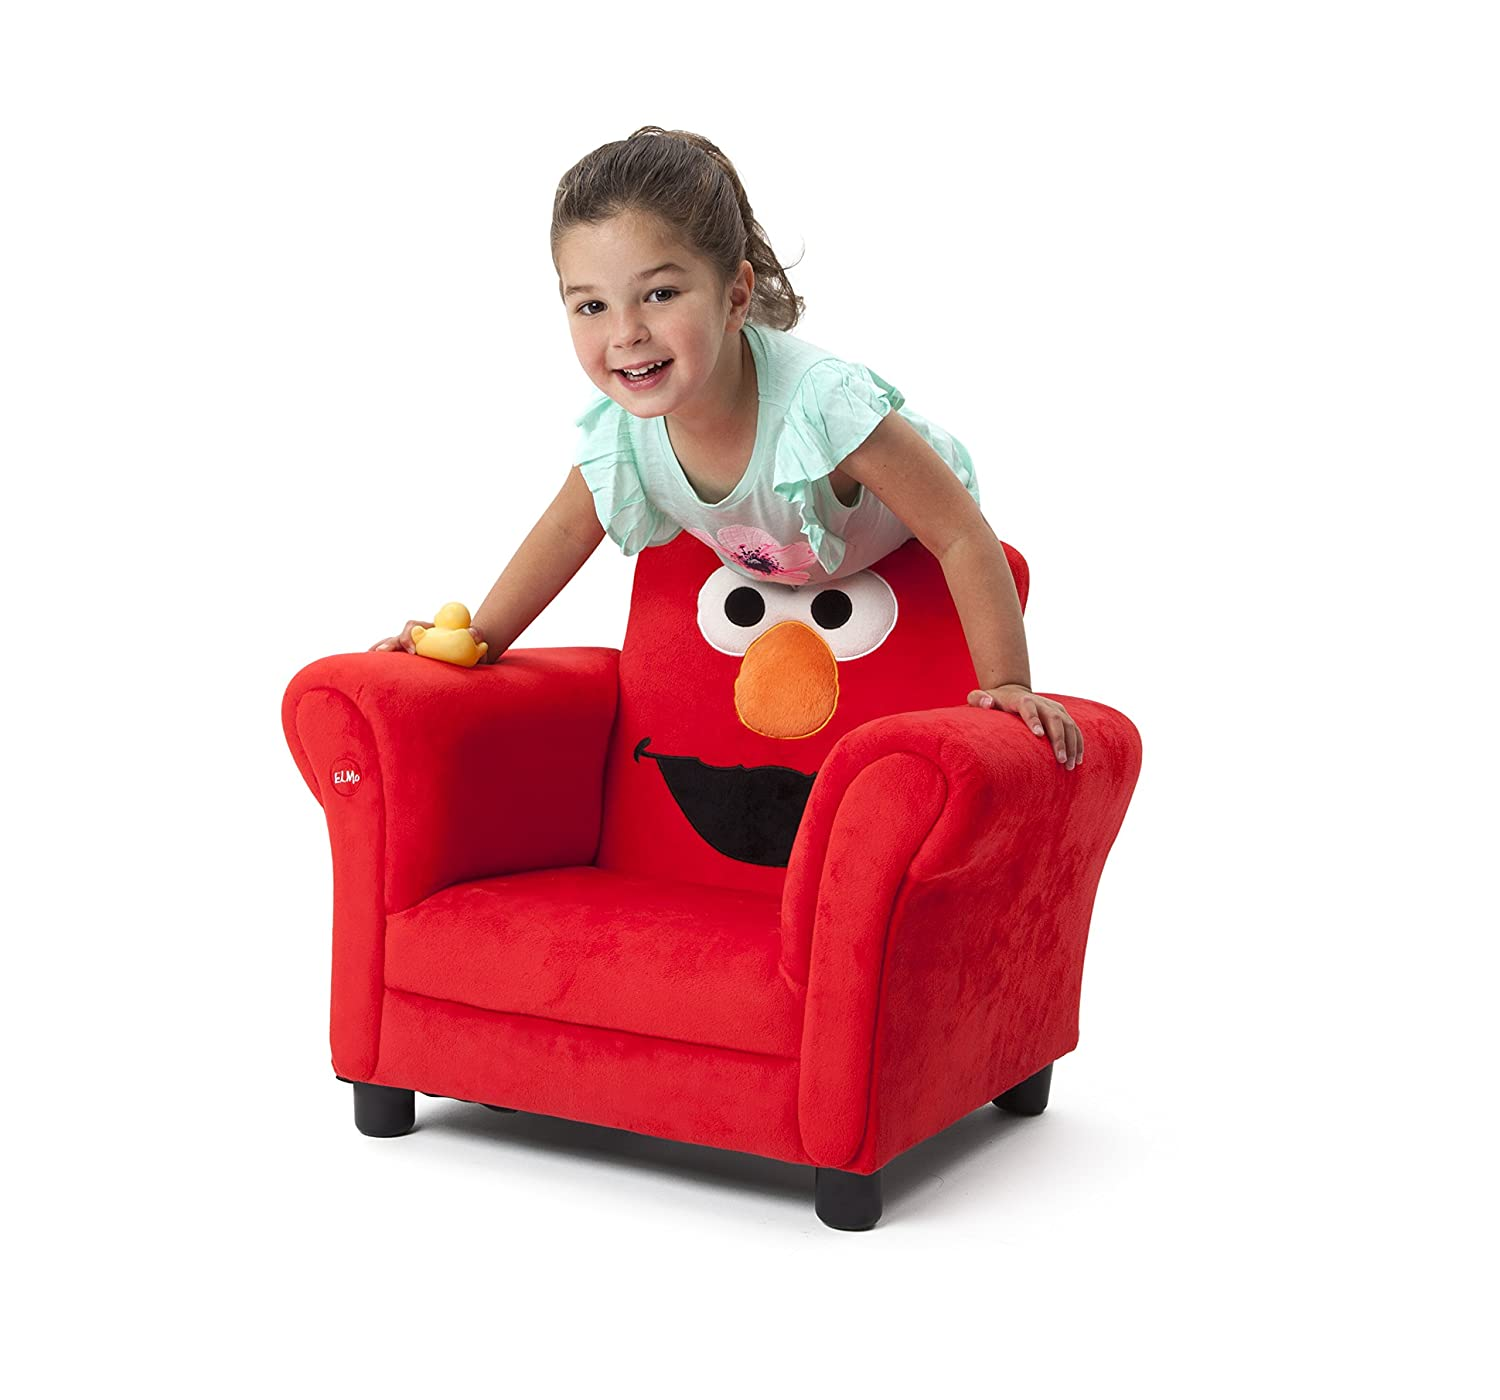 Amazon.com: Delta Children Upholstered Chair W/ Sound, Elmo Sesame Street:  Baby